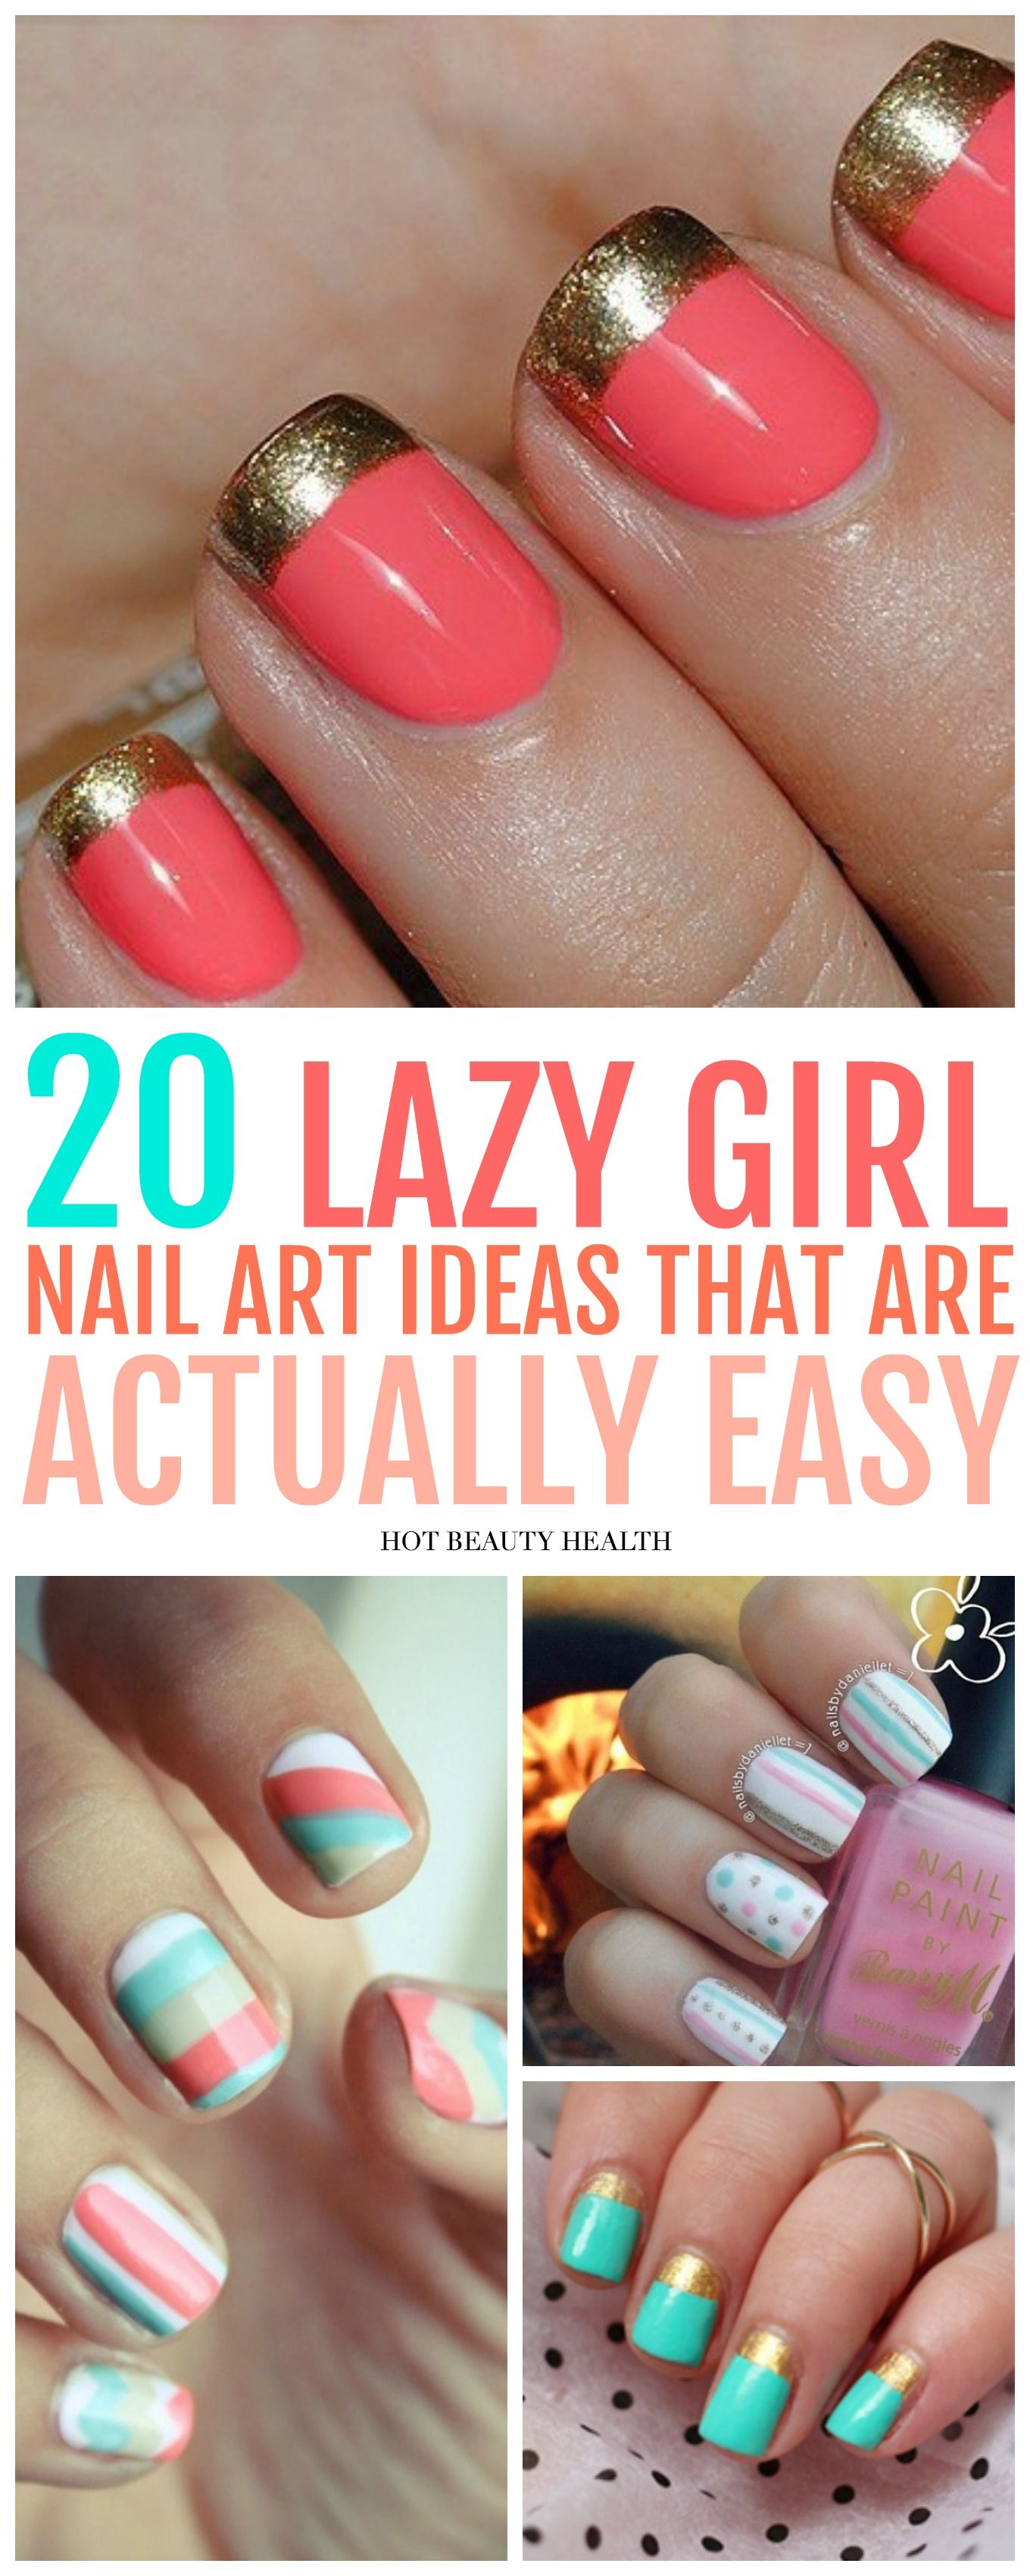 20 Lazy Girl Nail Art Ideas That Are Actually Easy Hair Beauty